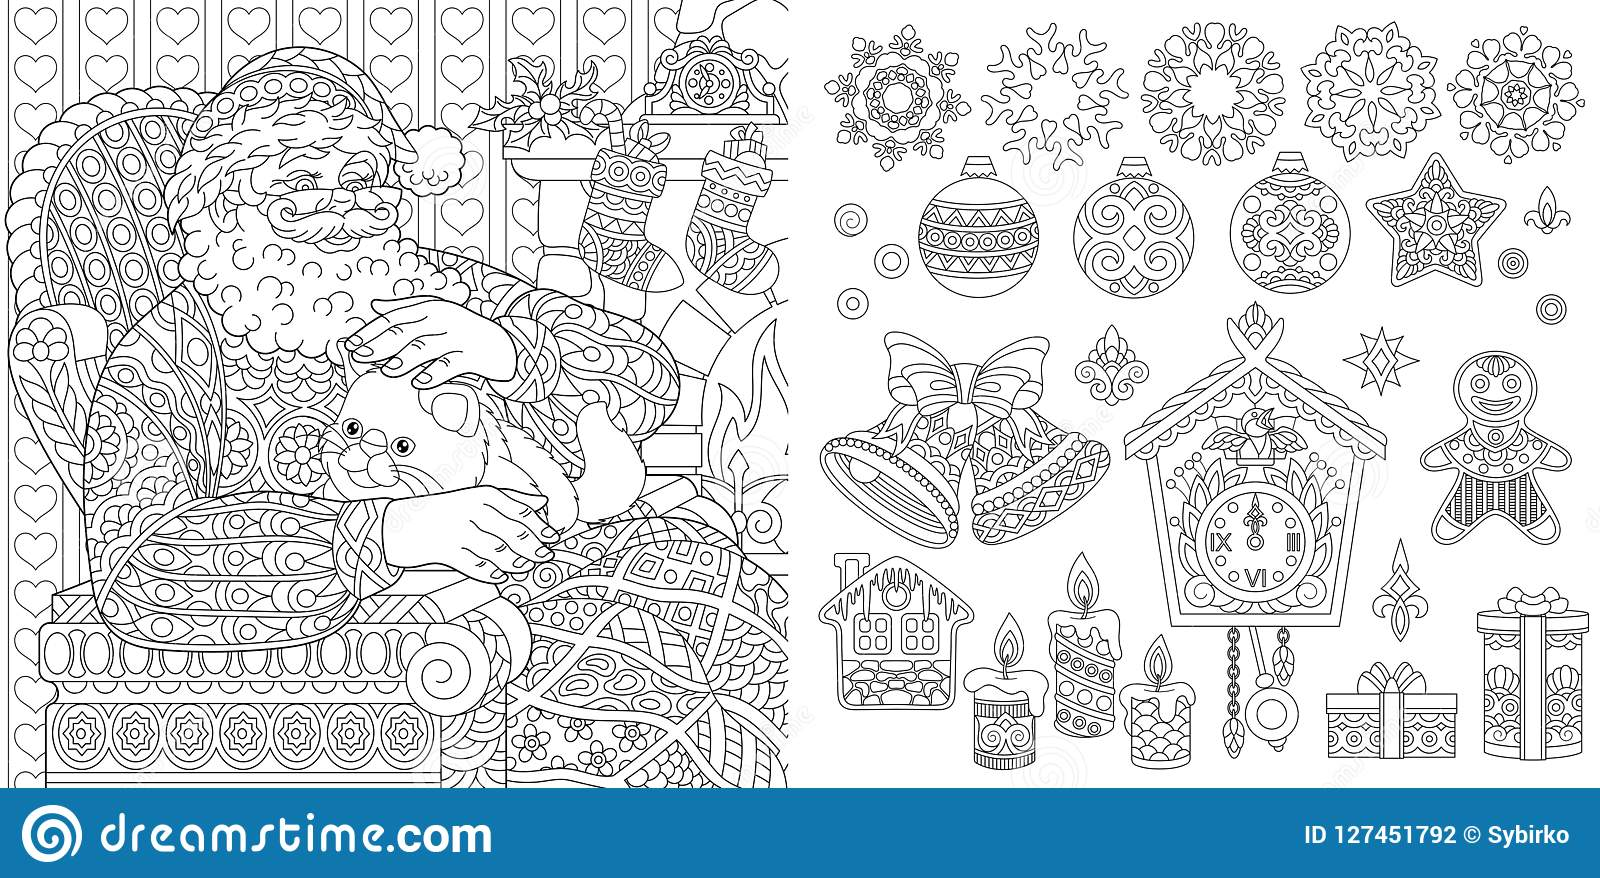 - New Year Christmas Coloring Page Stock Vector - Illustration Of